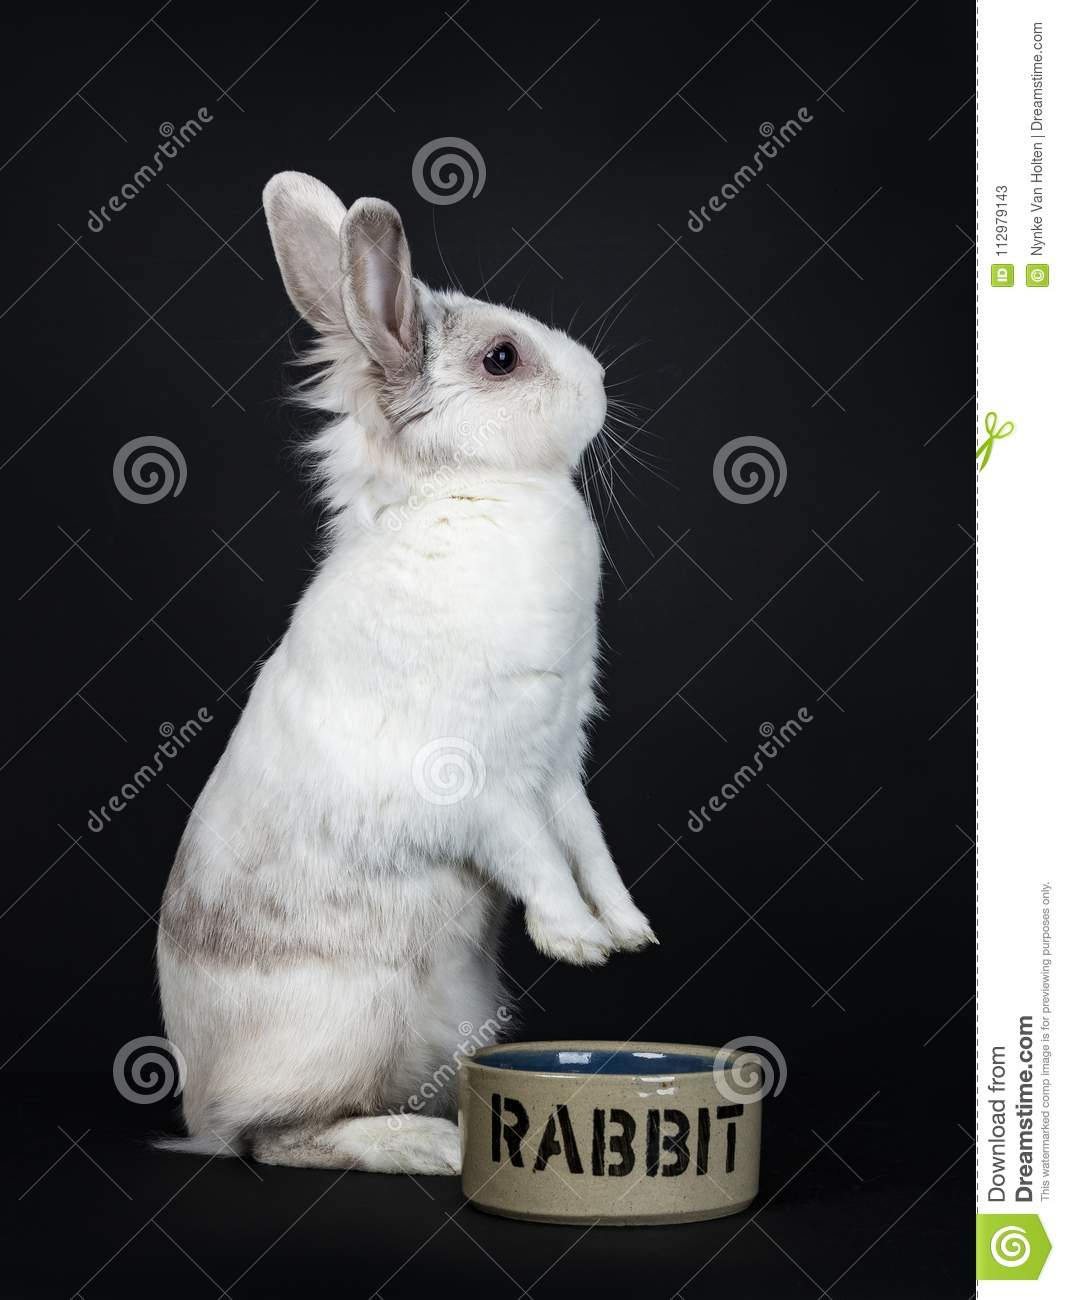 White with grey rabbit